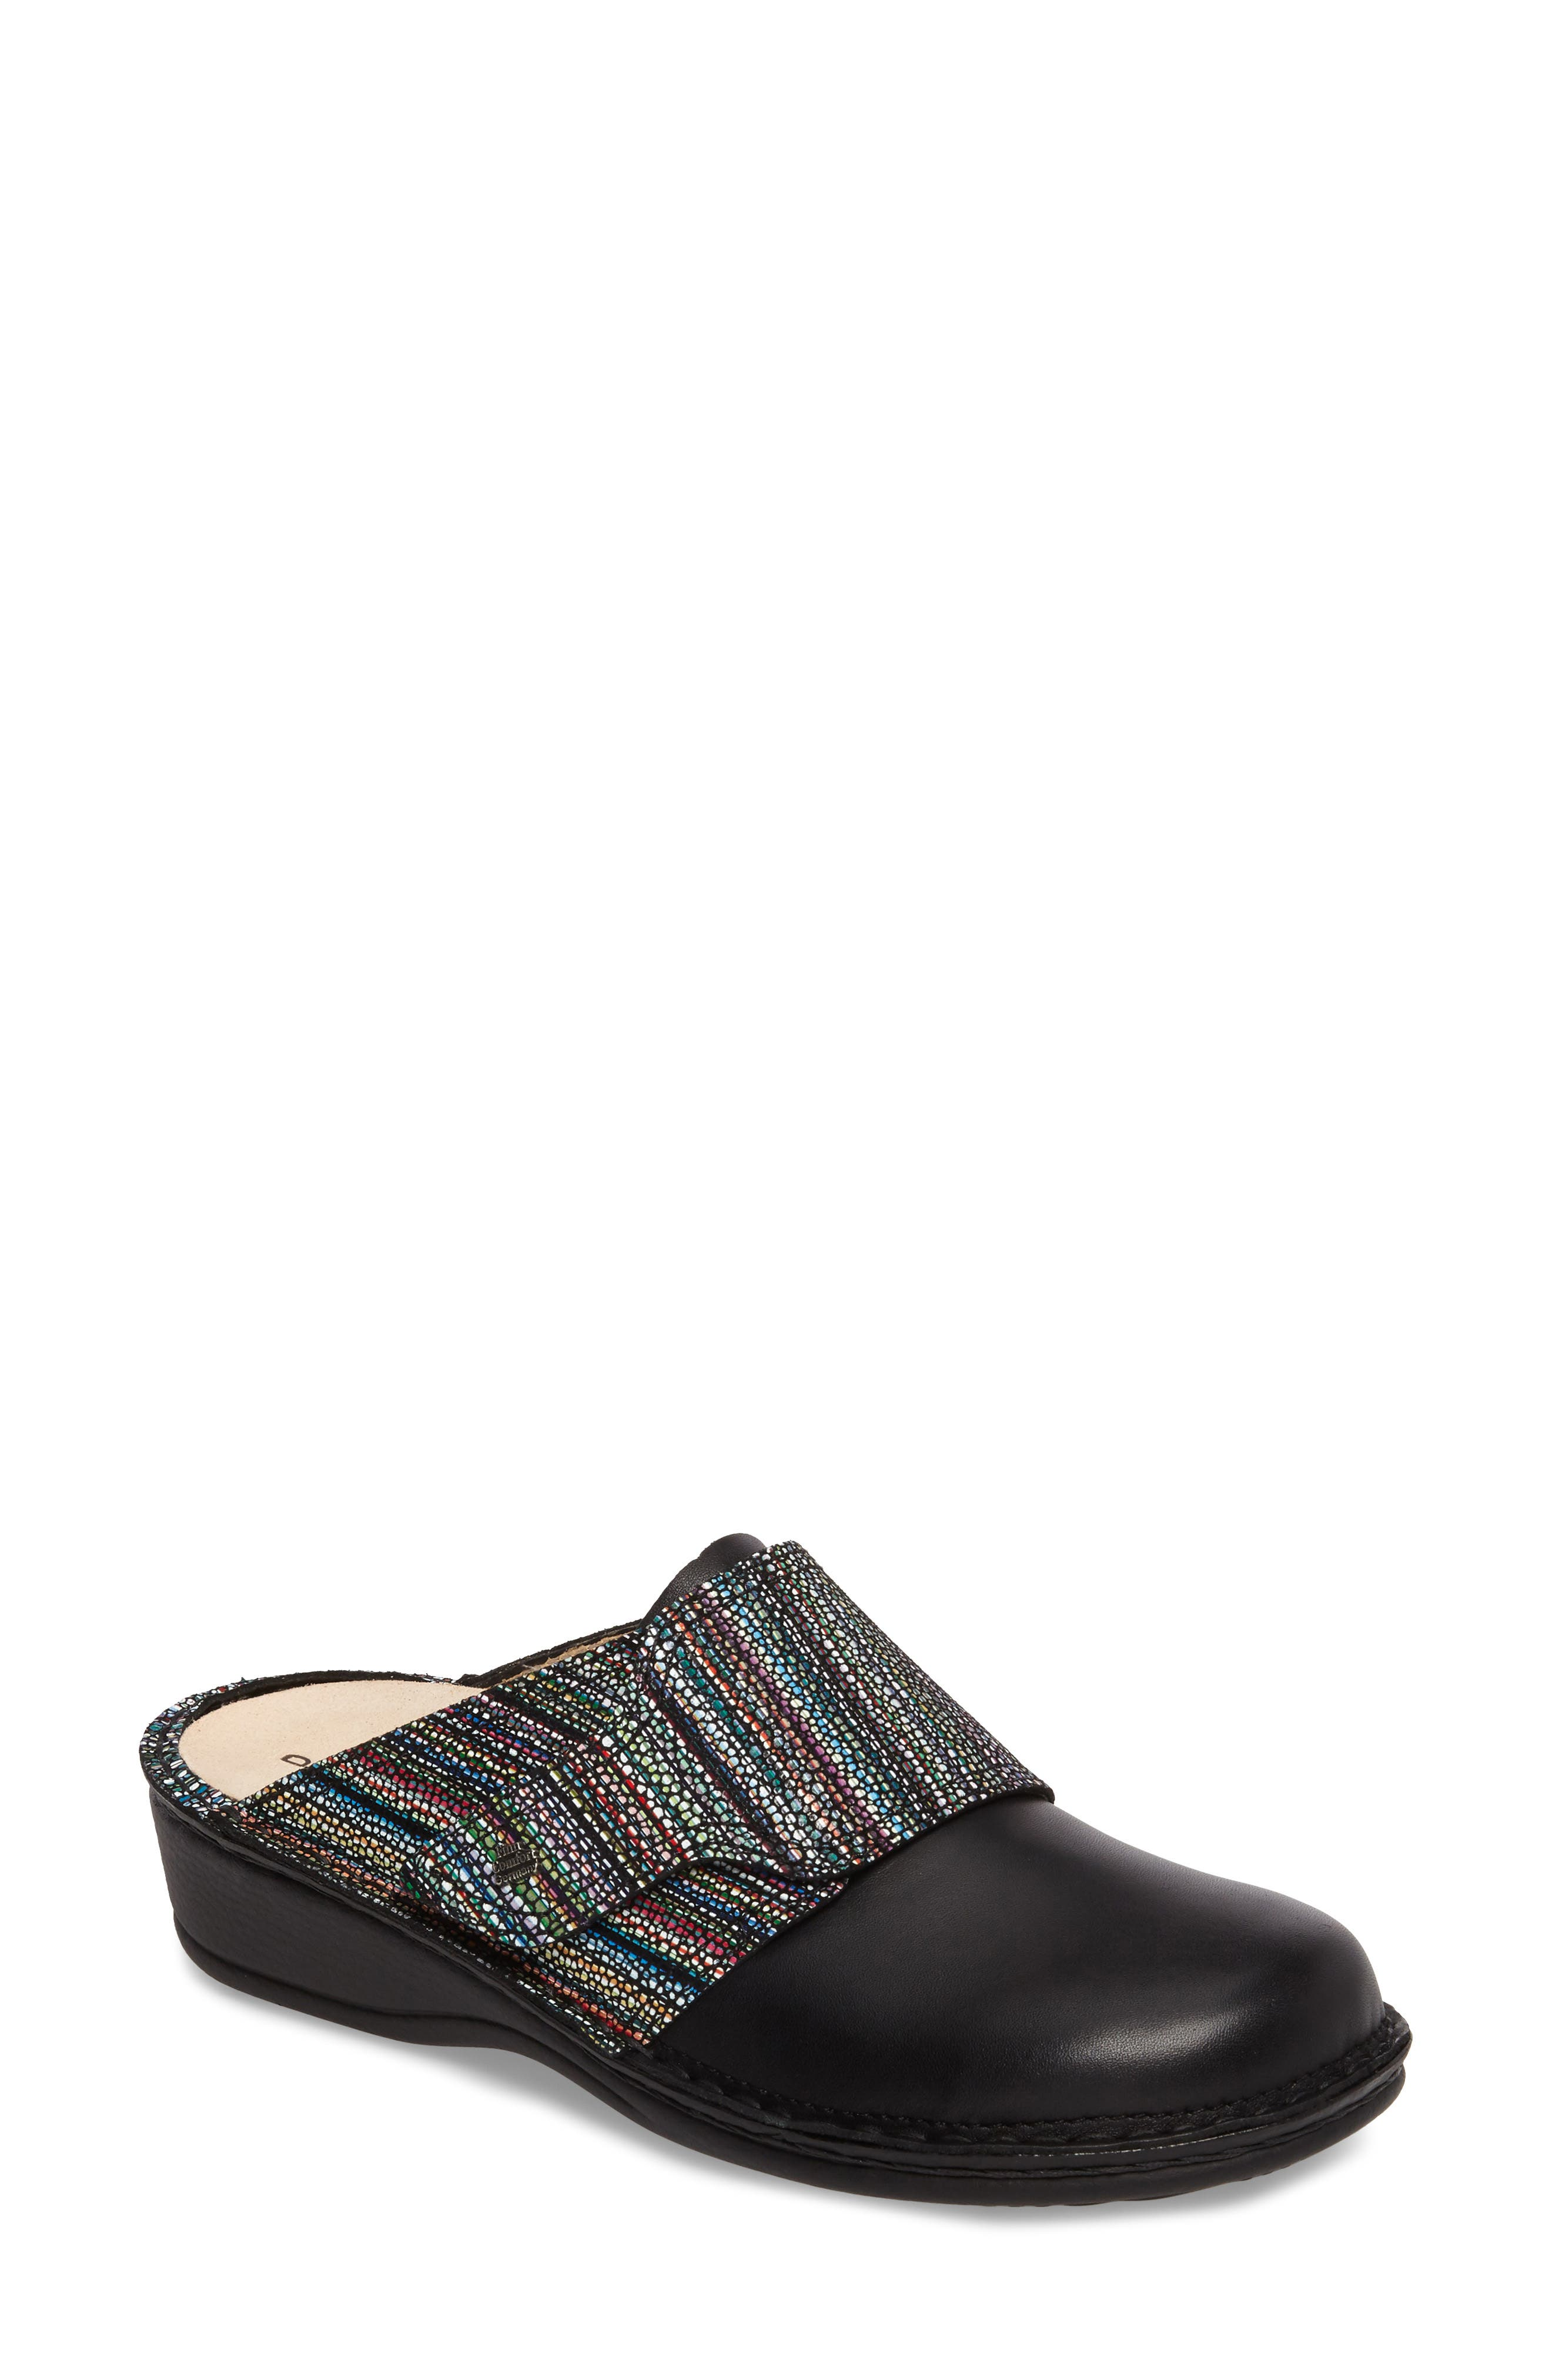 Aussee Clog,                         Main,                         color, BLACK LEATHER